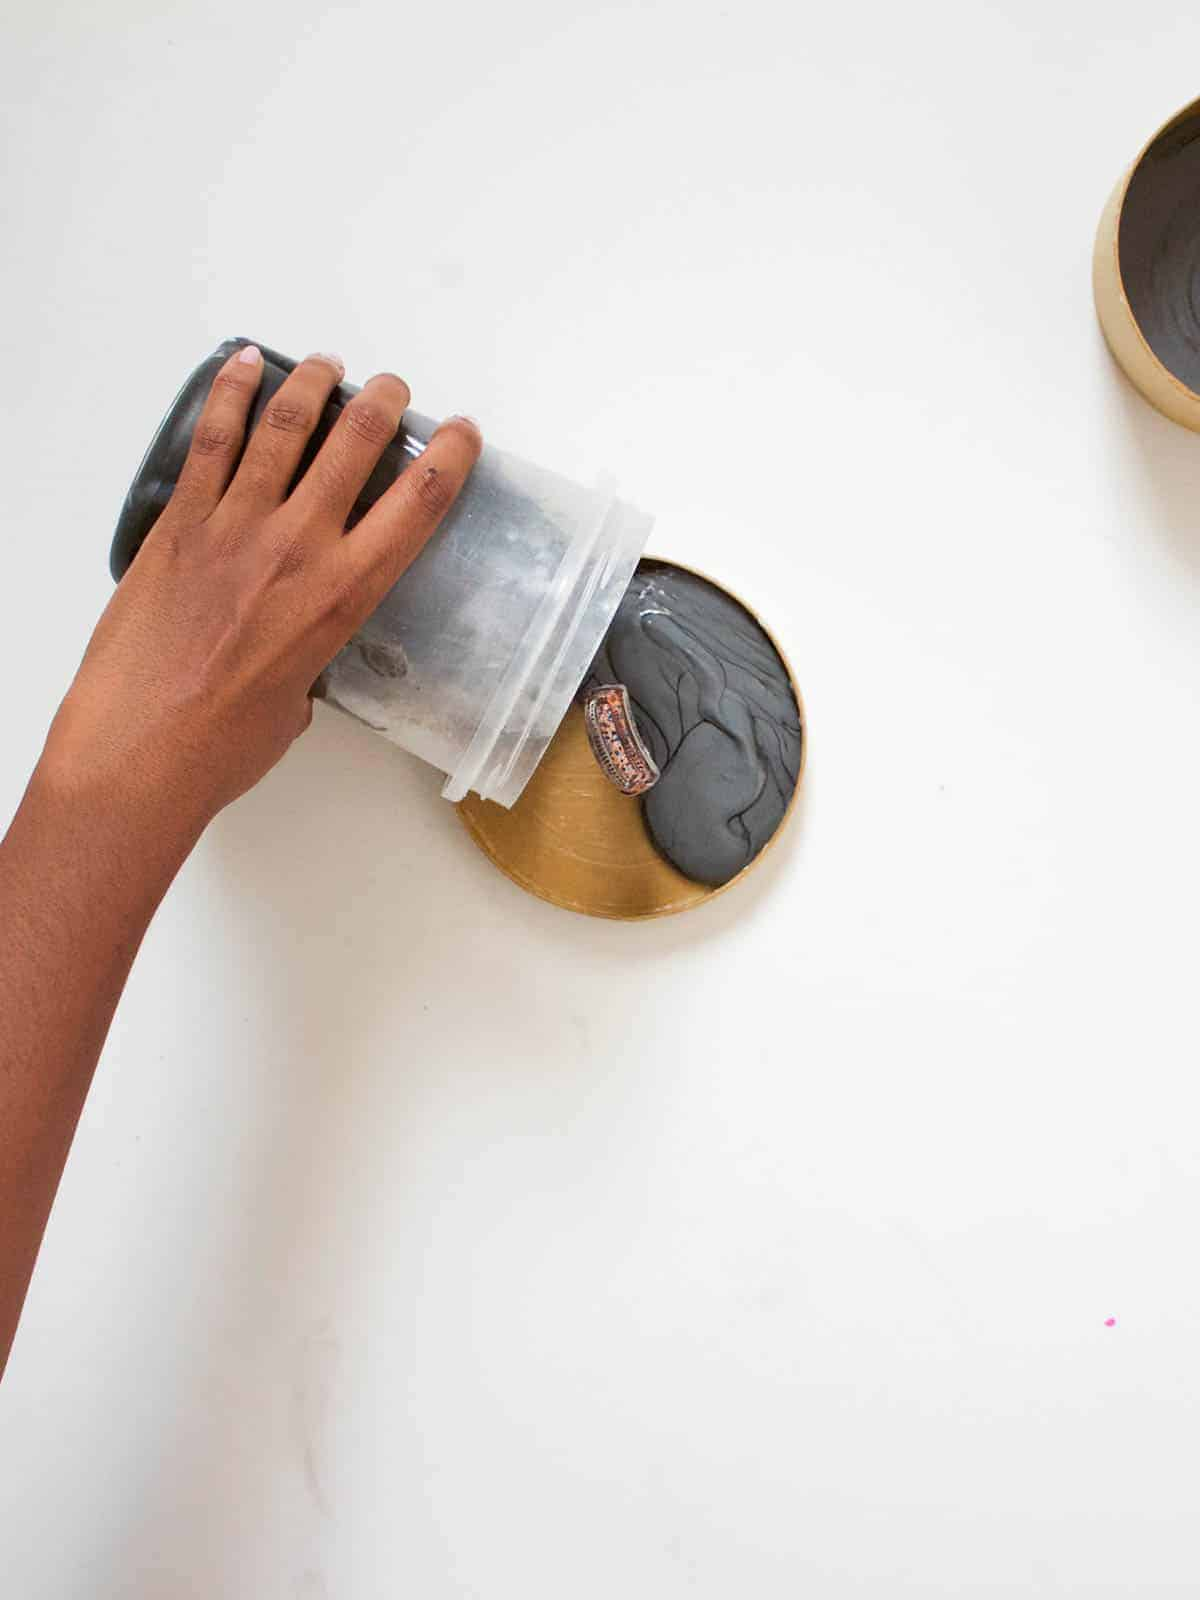 DIY Concrete Bowl and Lid | Fish & Bull - If you too are in need of some modern small storage for your office supplies, keys or jewelry this DIY was made for you!